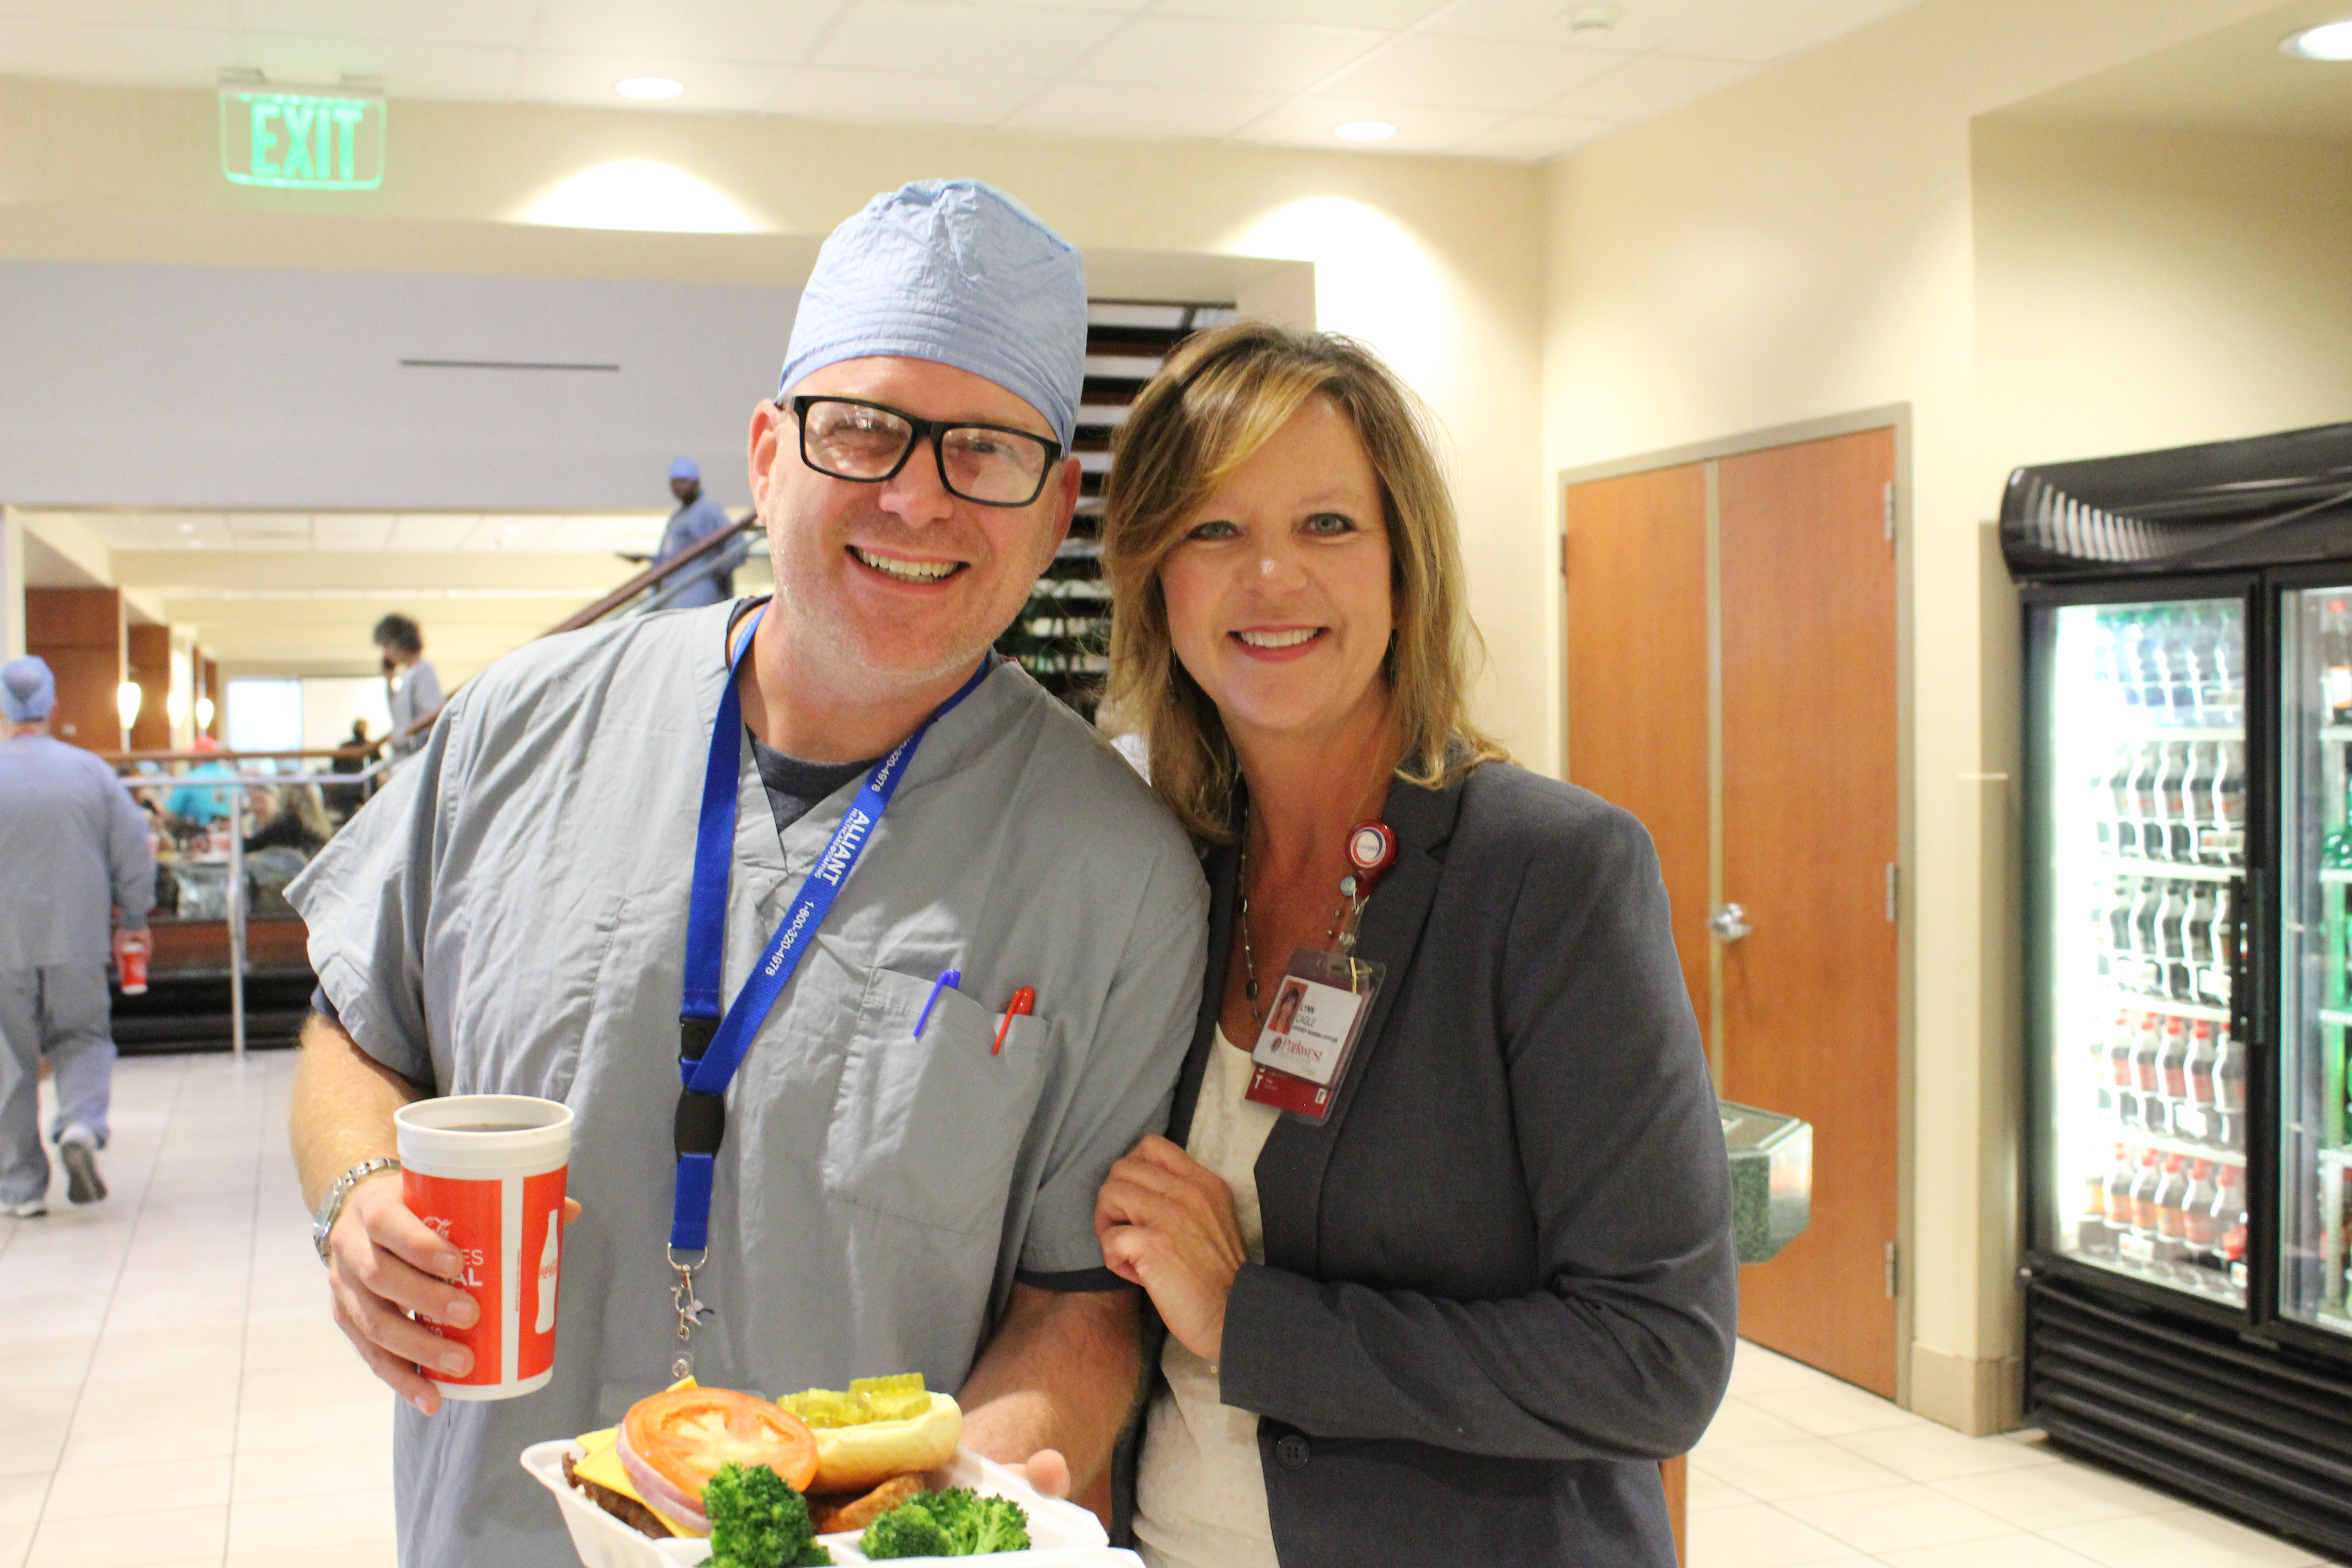 Nurse with Lynn cagle in cafeteria.